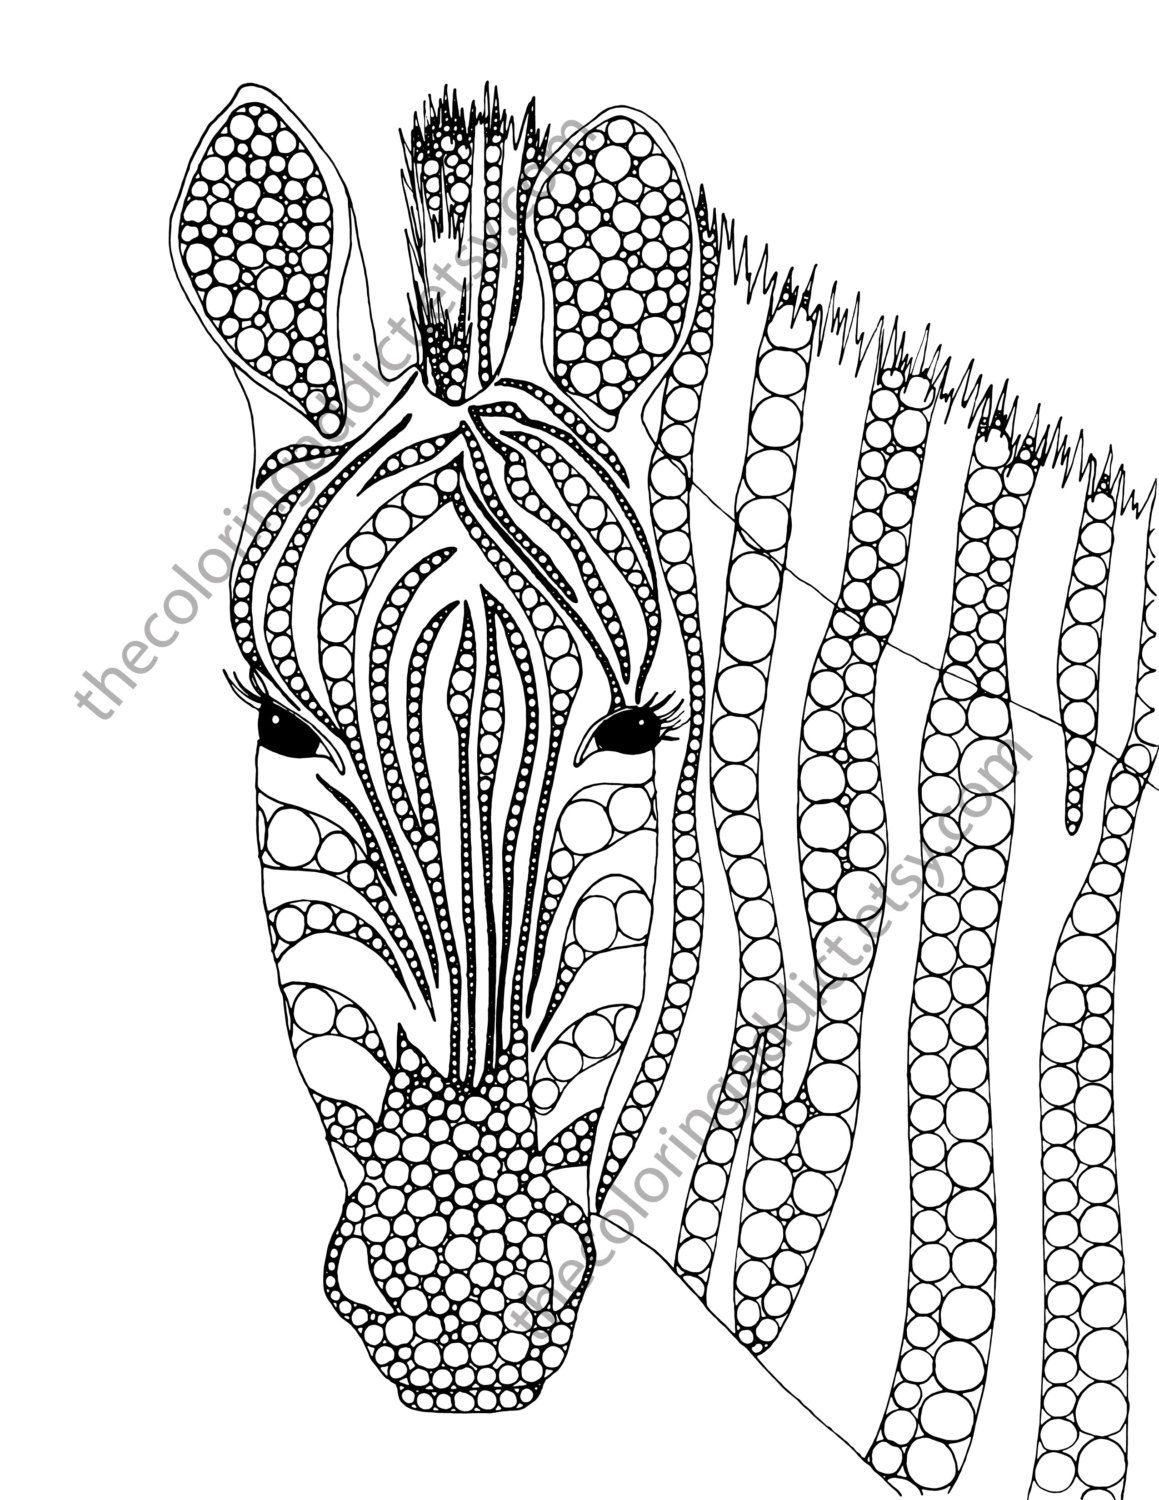 zebra coloring page, animal coloring page, adult coloring page ...